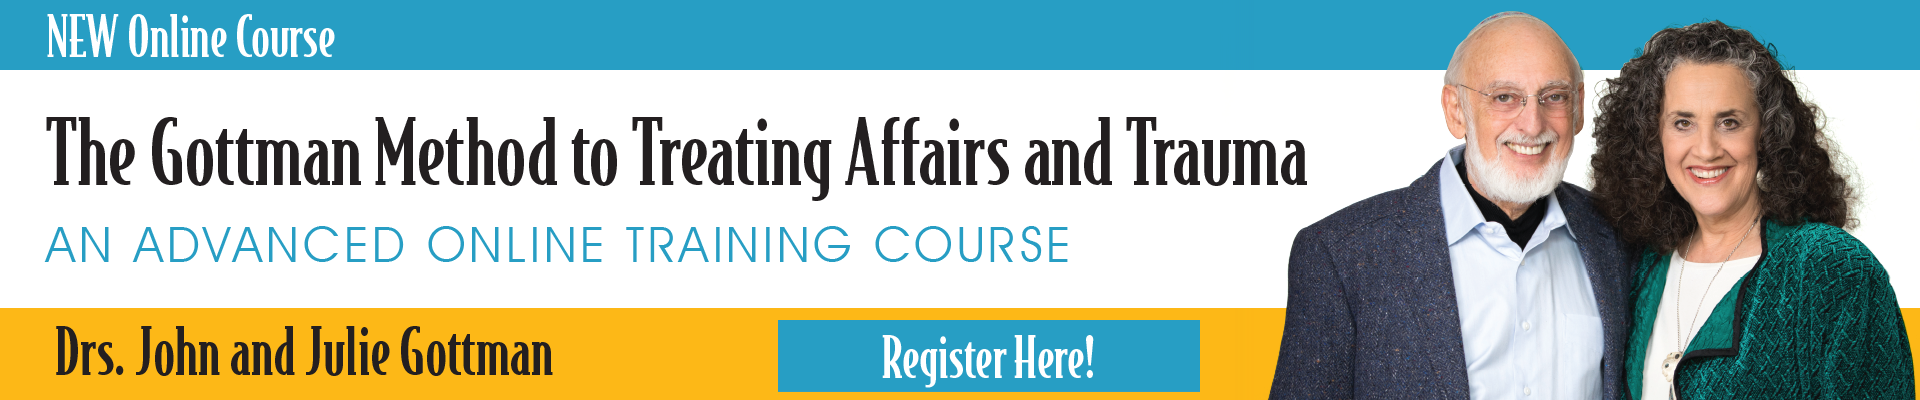 The Gottman Method to Treating Affairs and Trauma